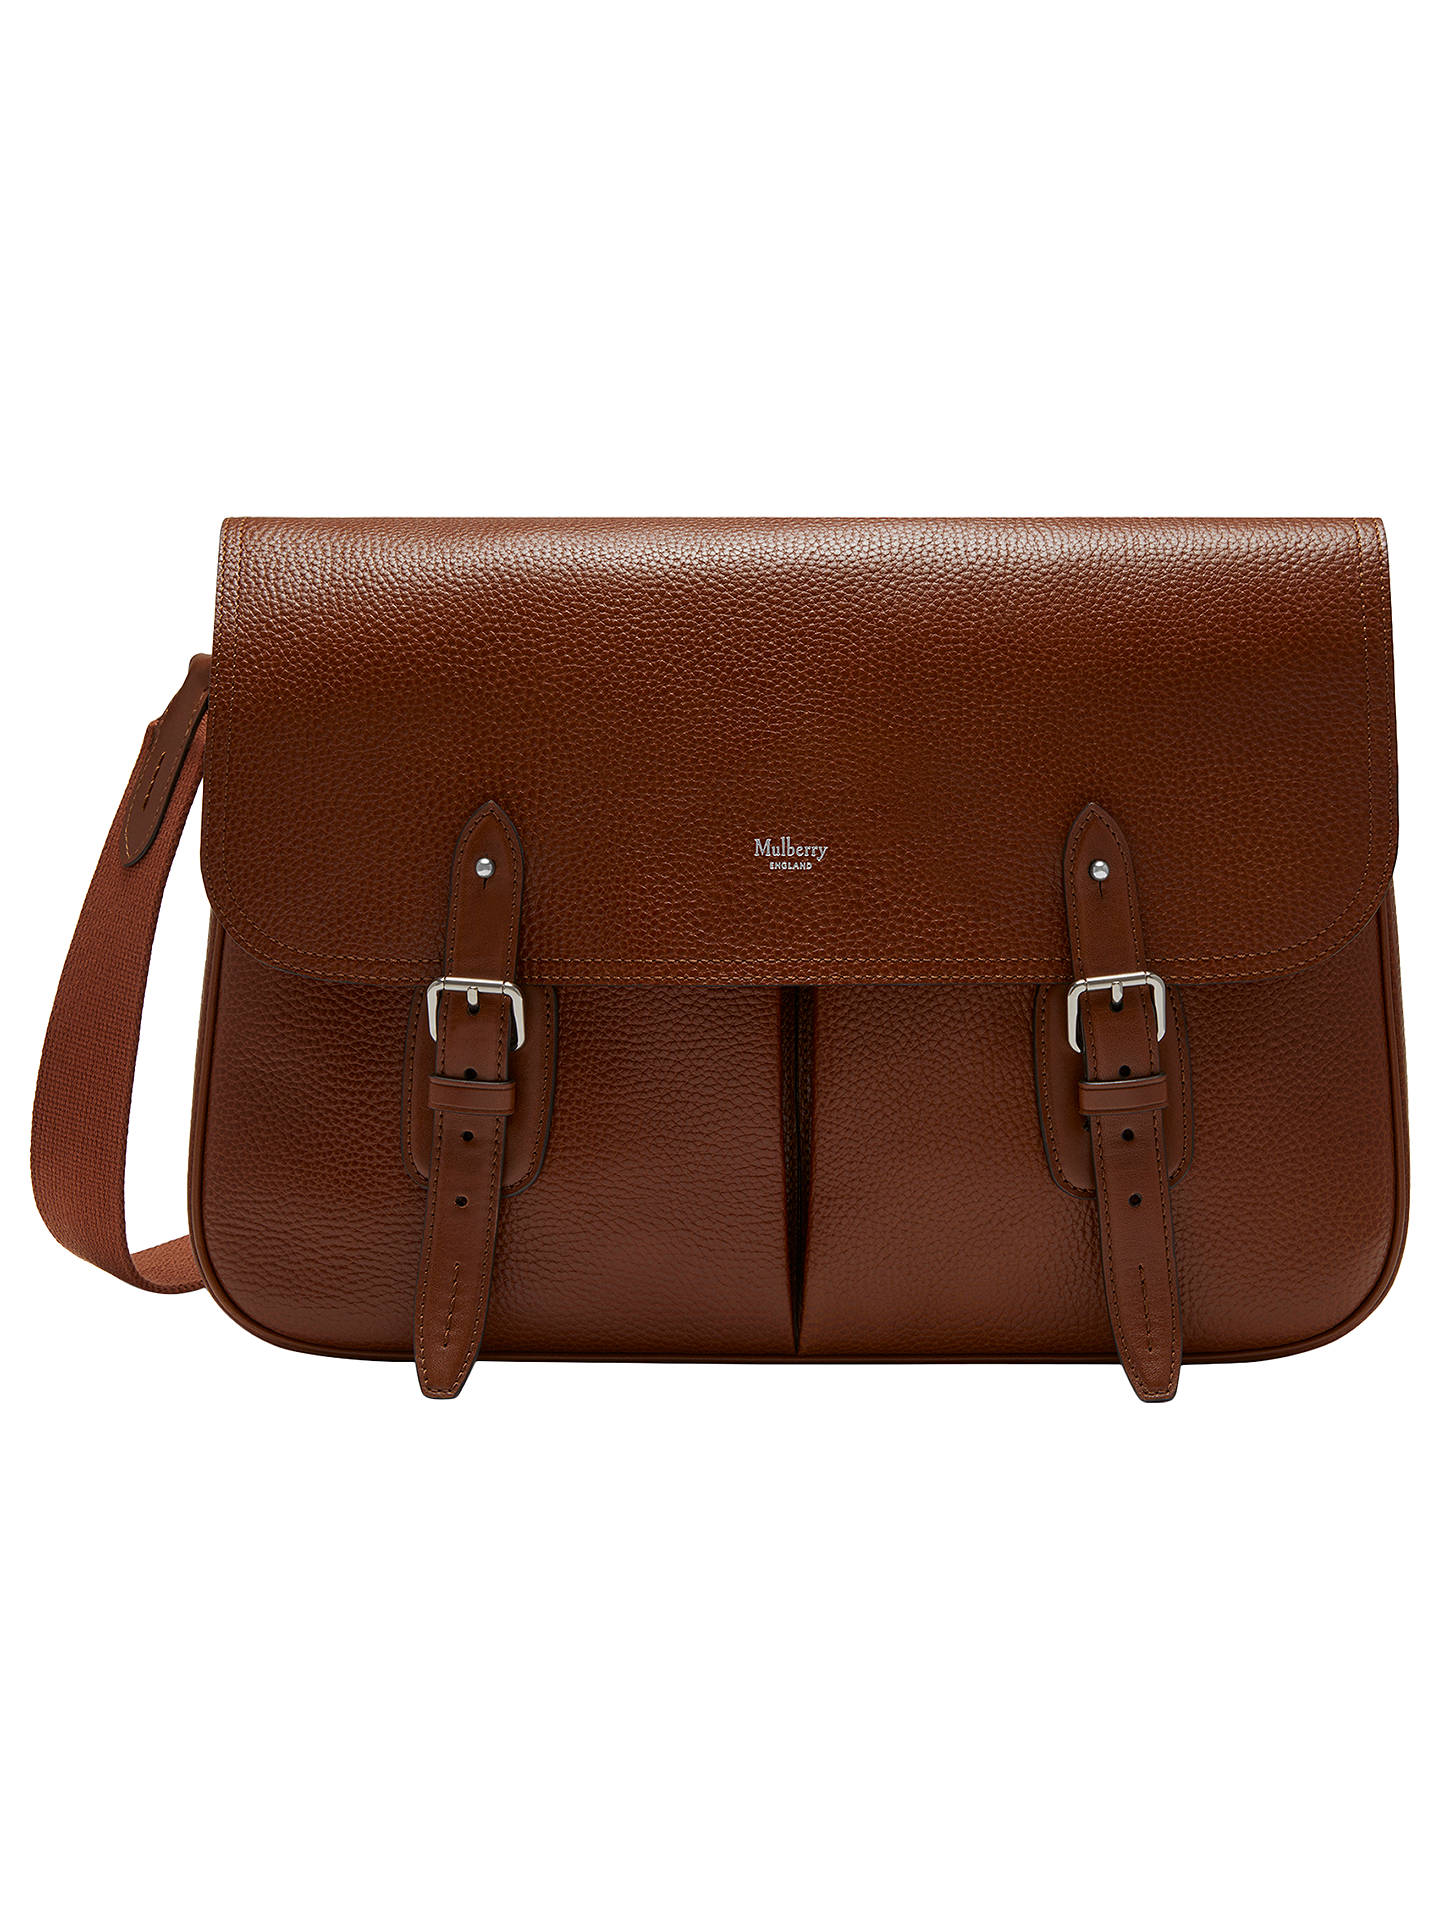 c45a40f20 Buy Mulberry Heritage Leather Messenger Bag, Brown Online at johnlewis.com  ...